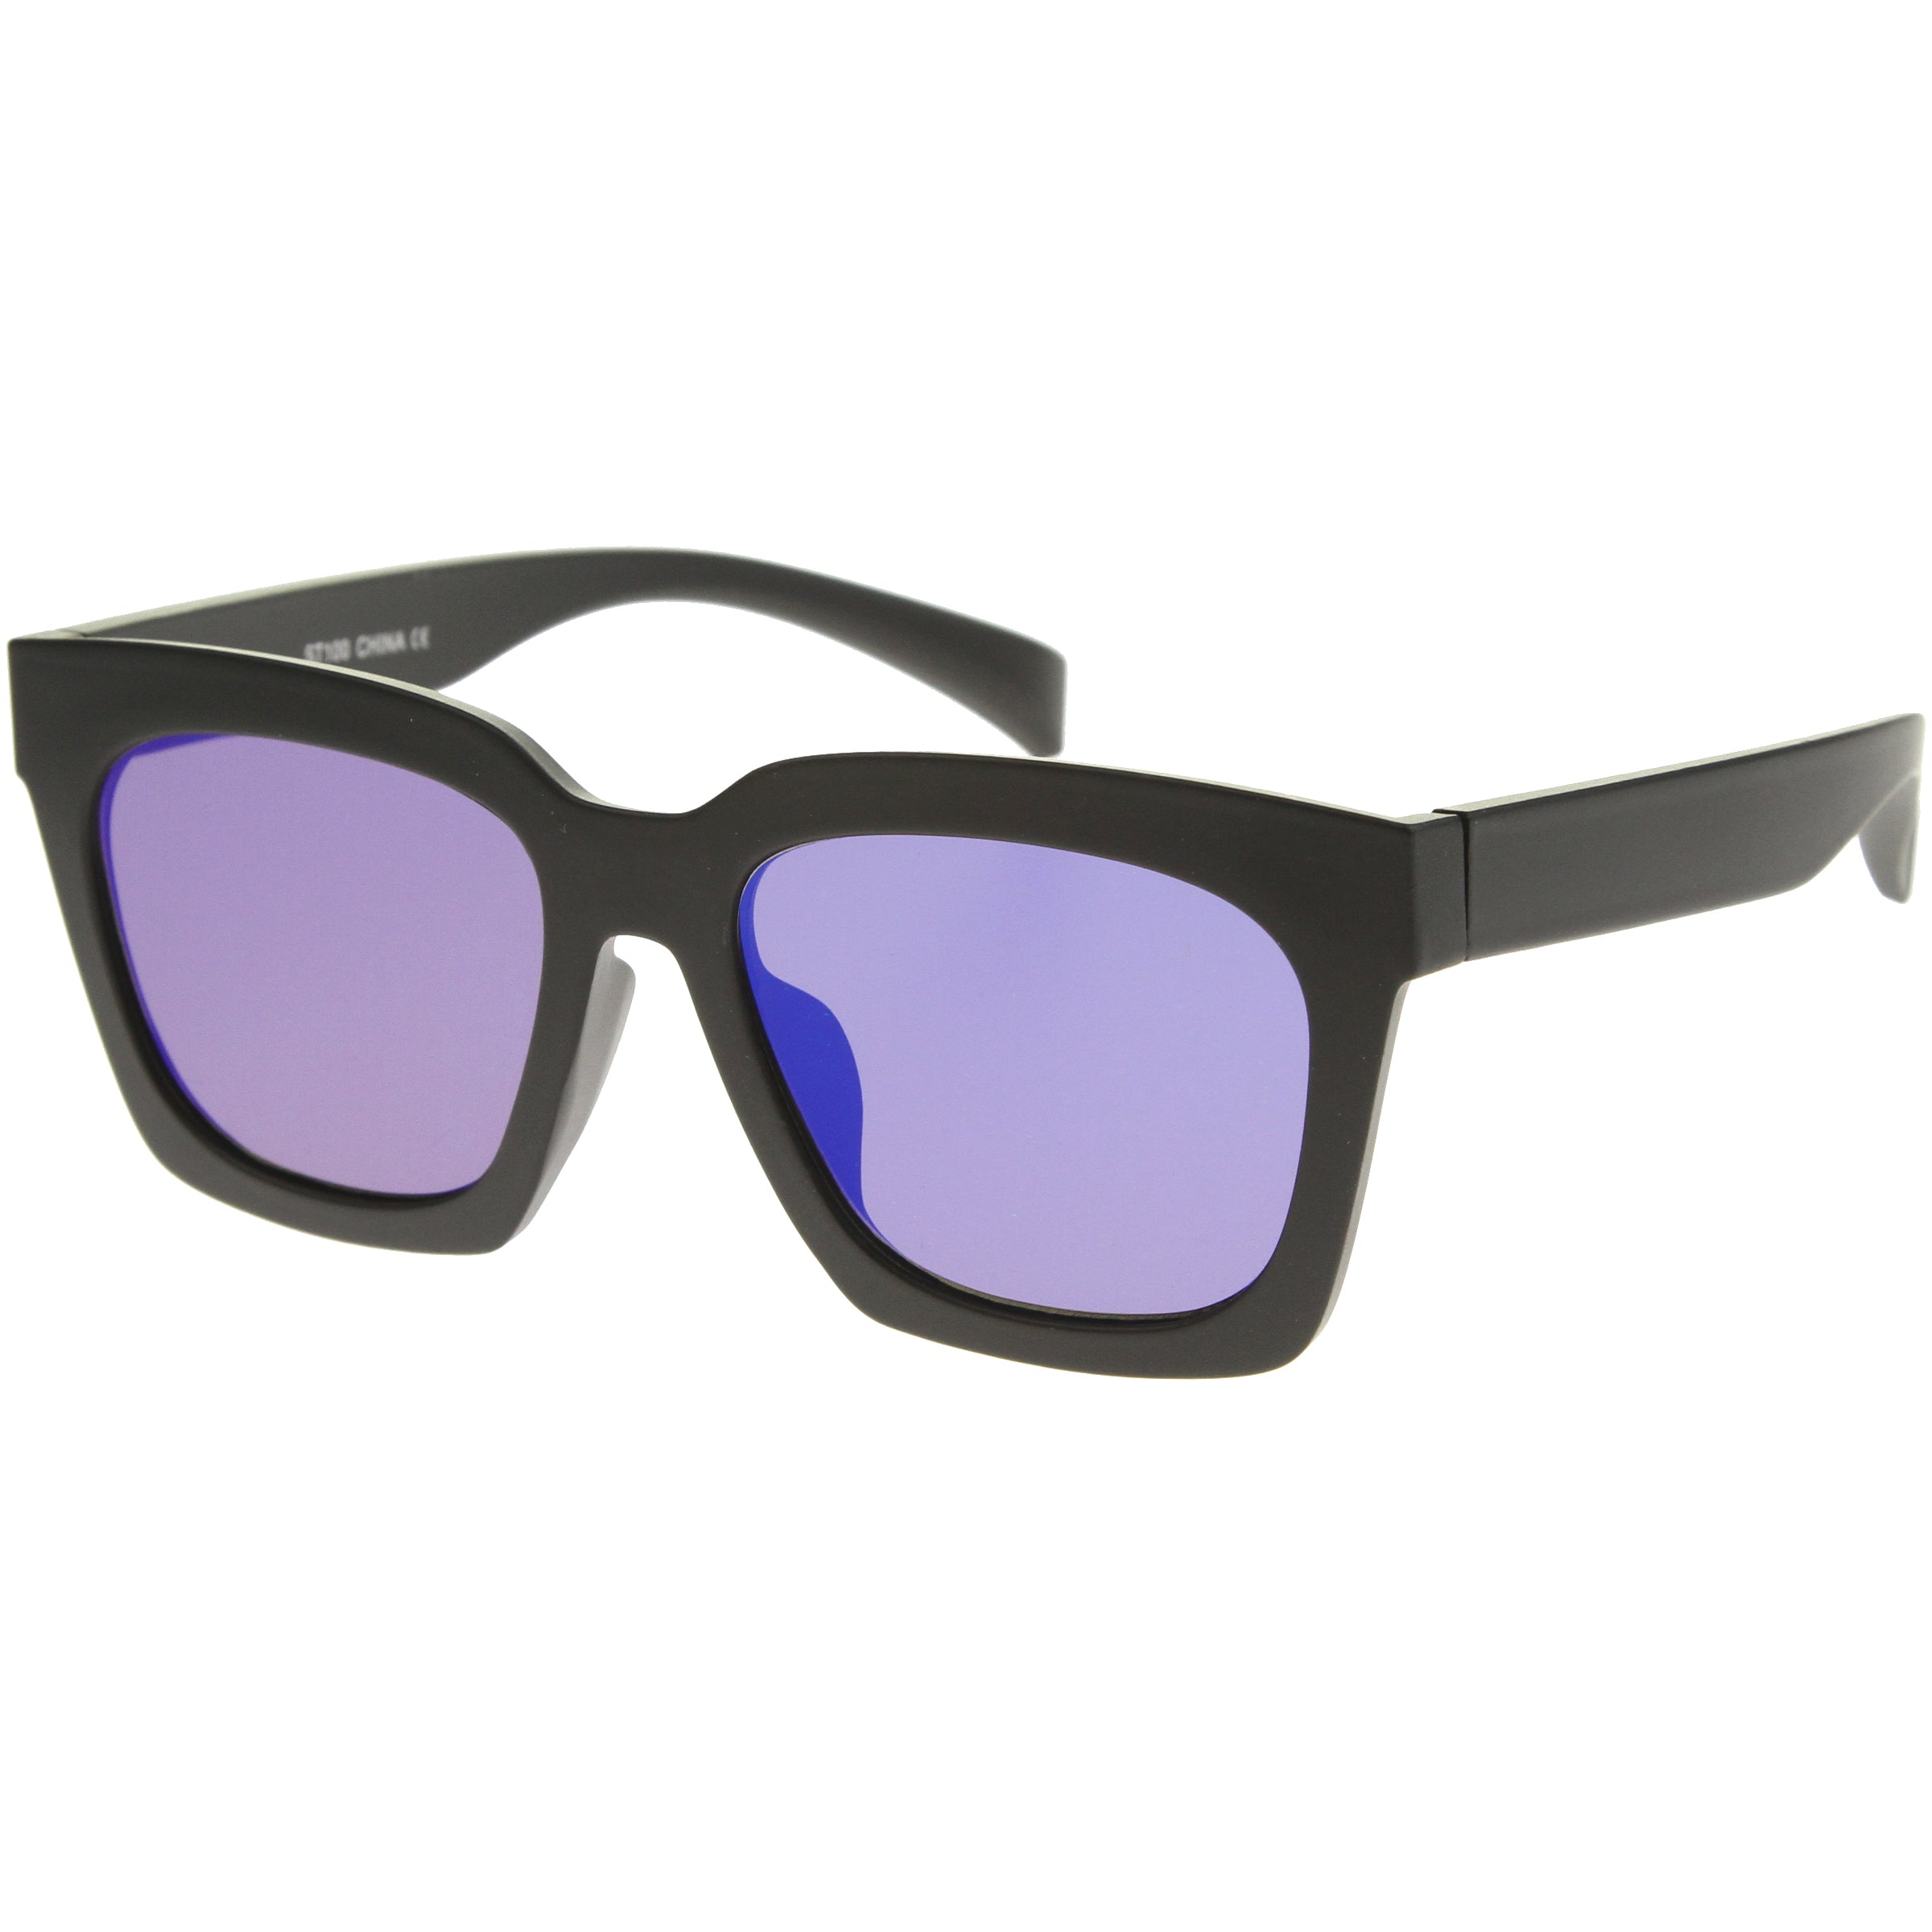 Retro Matte Horn Rimmed Colored Mirror Flat Lens Oversize Square Sunglasses 54mm - sunglass.la - 2